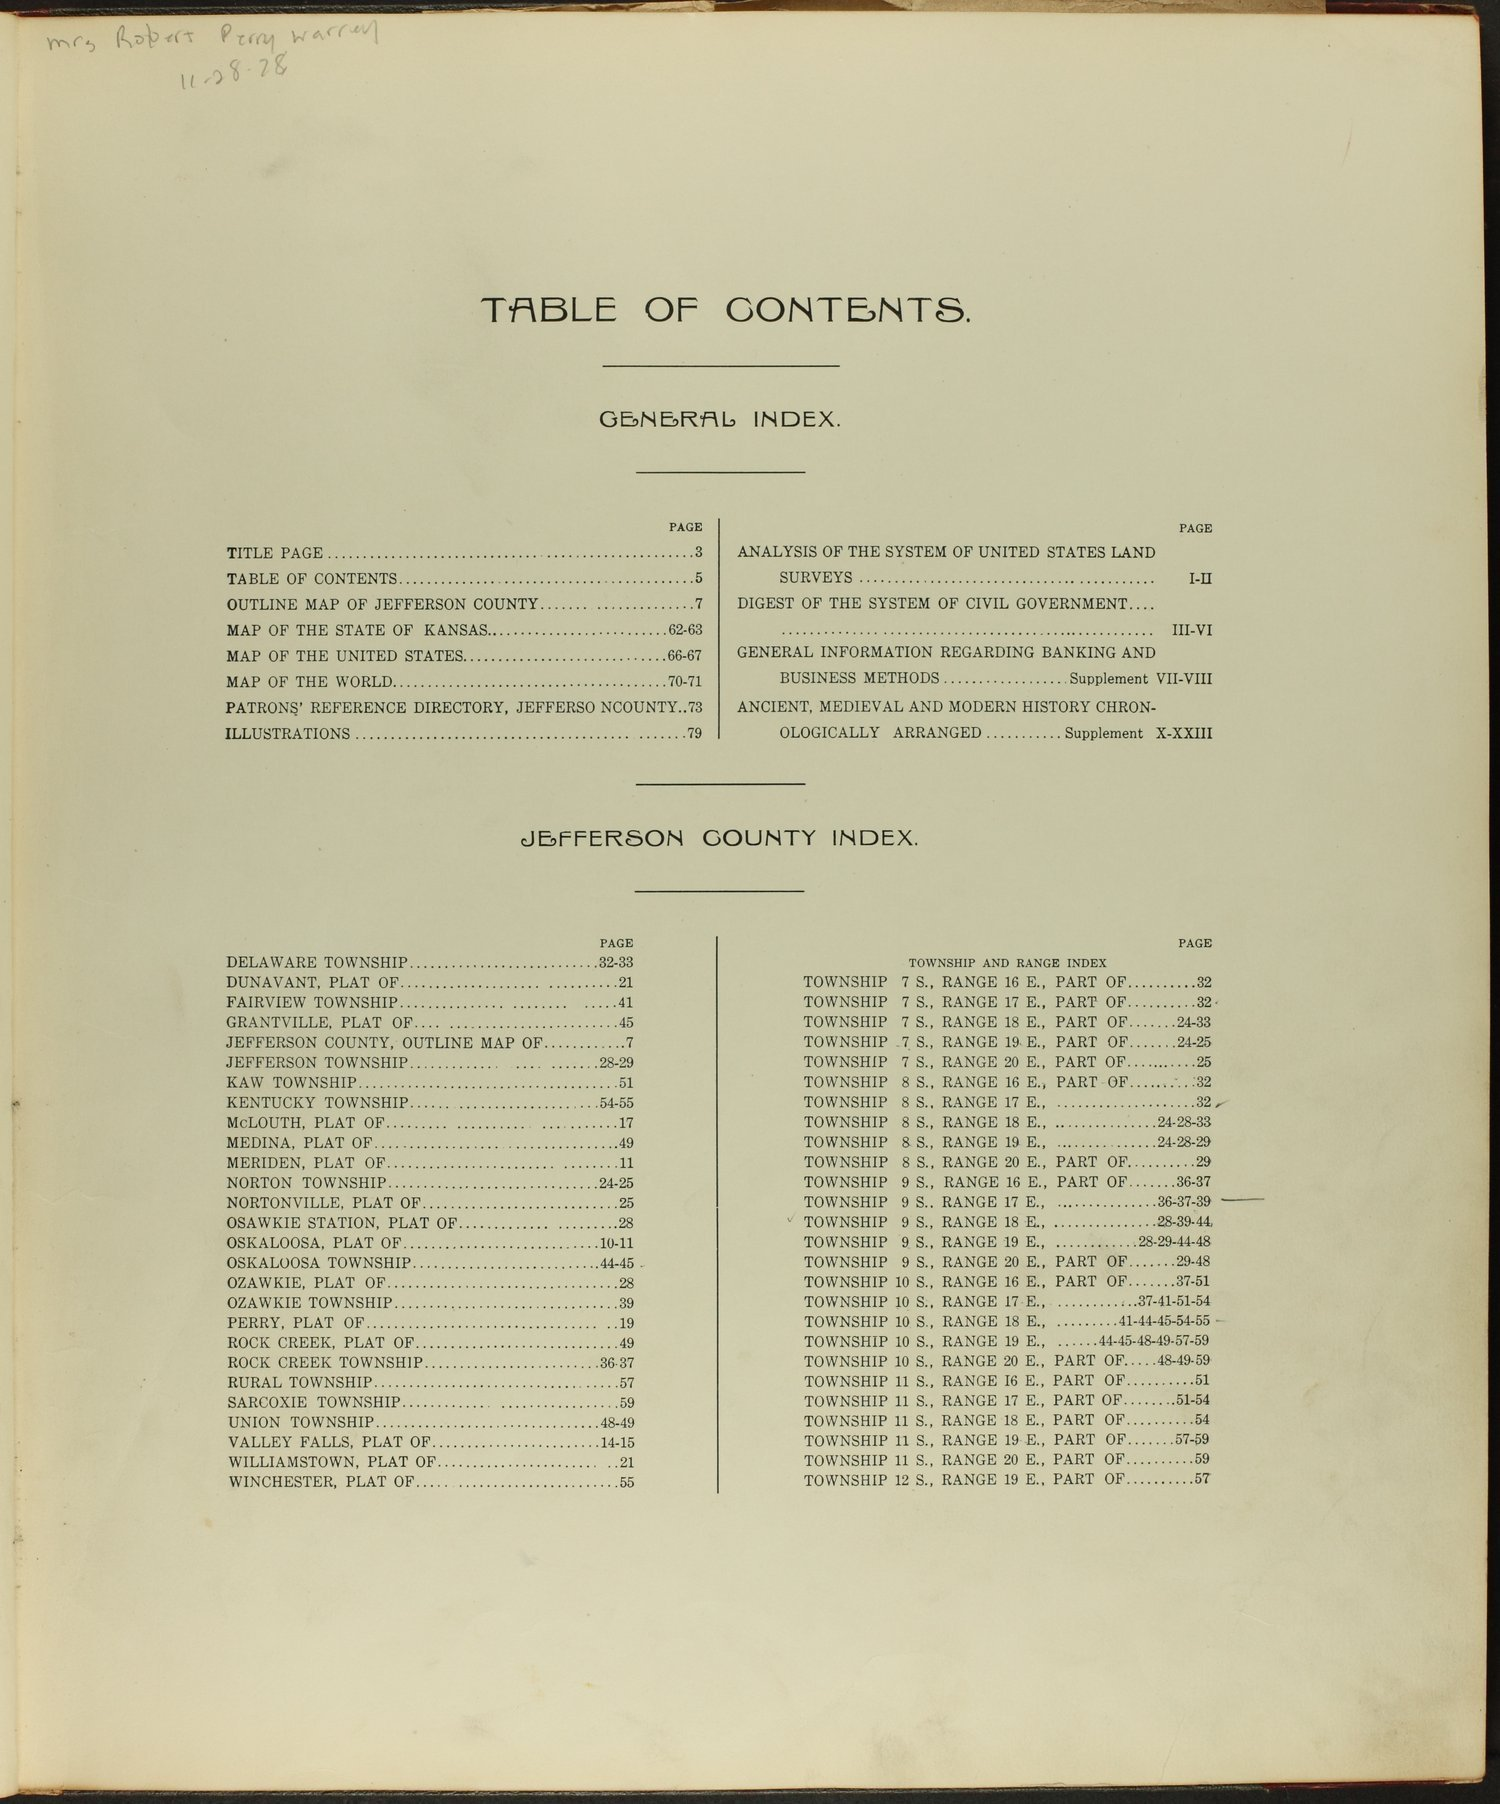 Standard atlas of Jefferson County, Kansas - Table of Contents